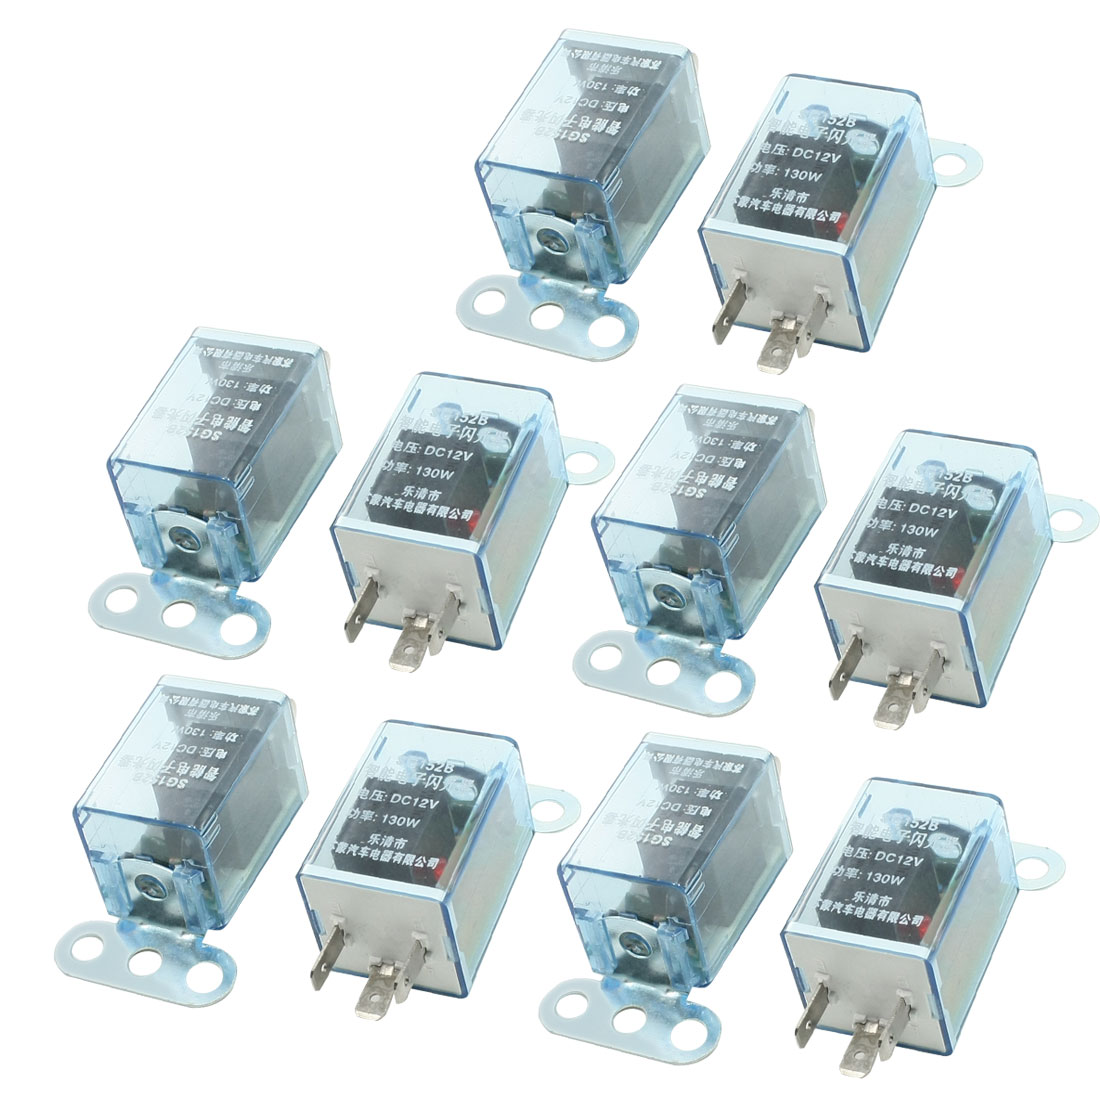 10 Pcs Universal DC 12V LED Light Indicator Lamp 3 Terminals Car Flasher Relay